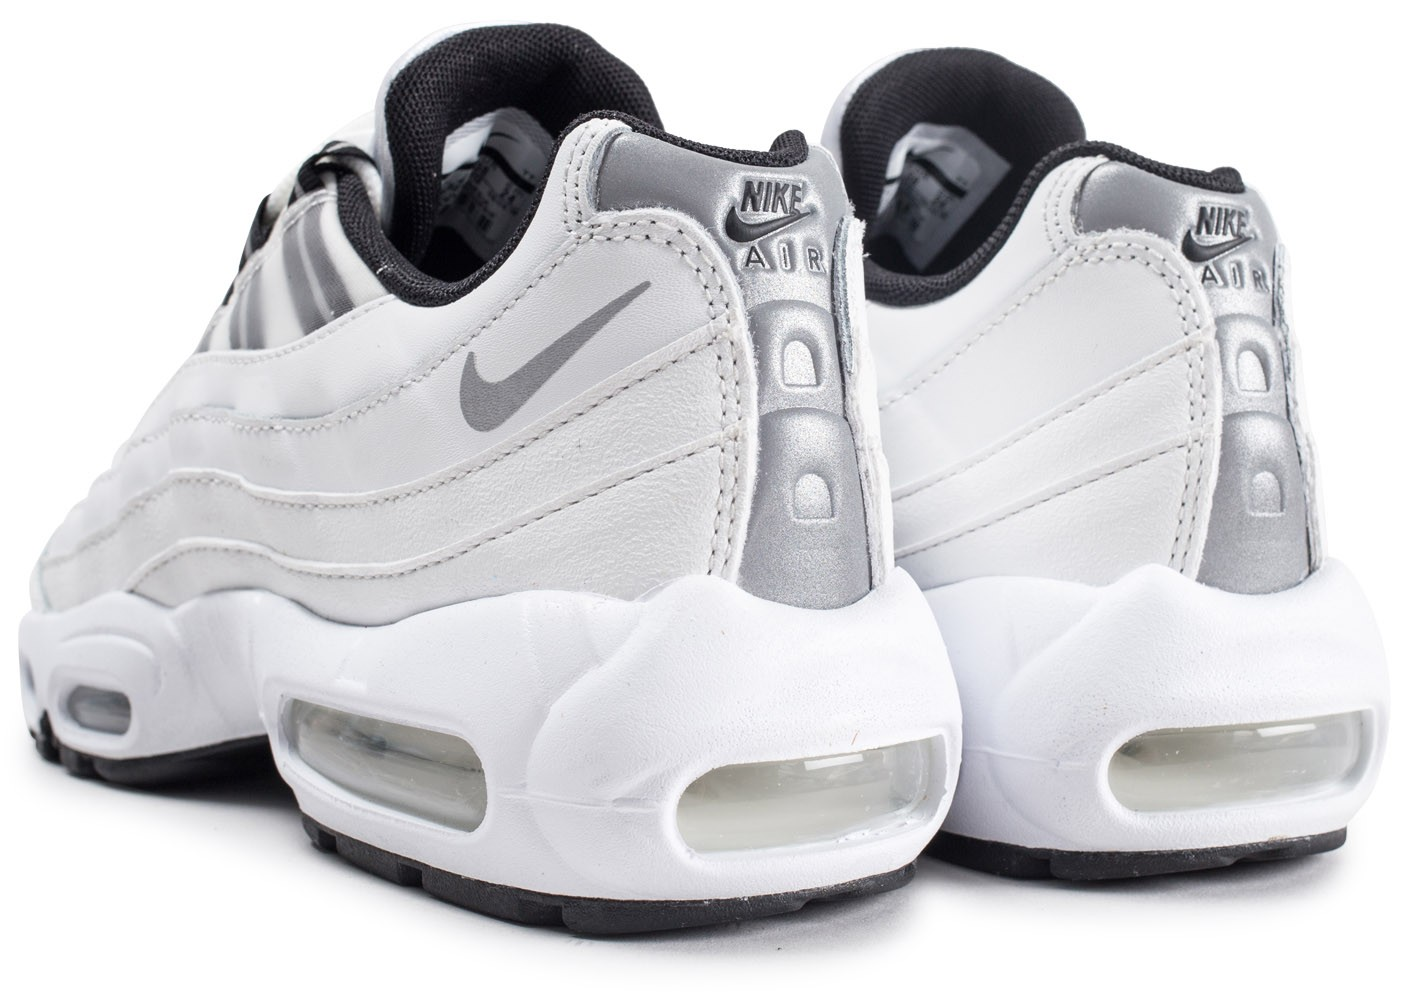 Nike Air Max 95 blanche et argent femme - Chaussures Baskets ...